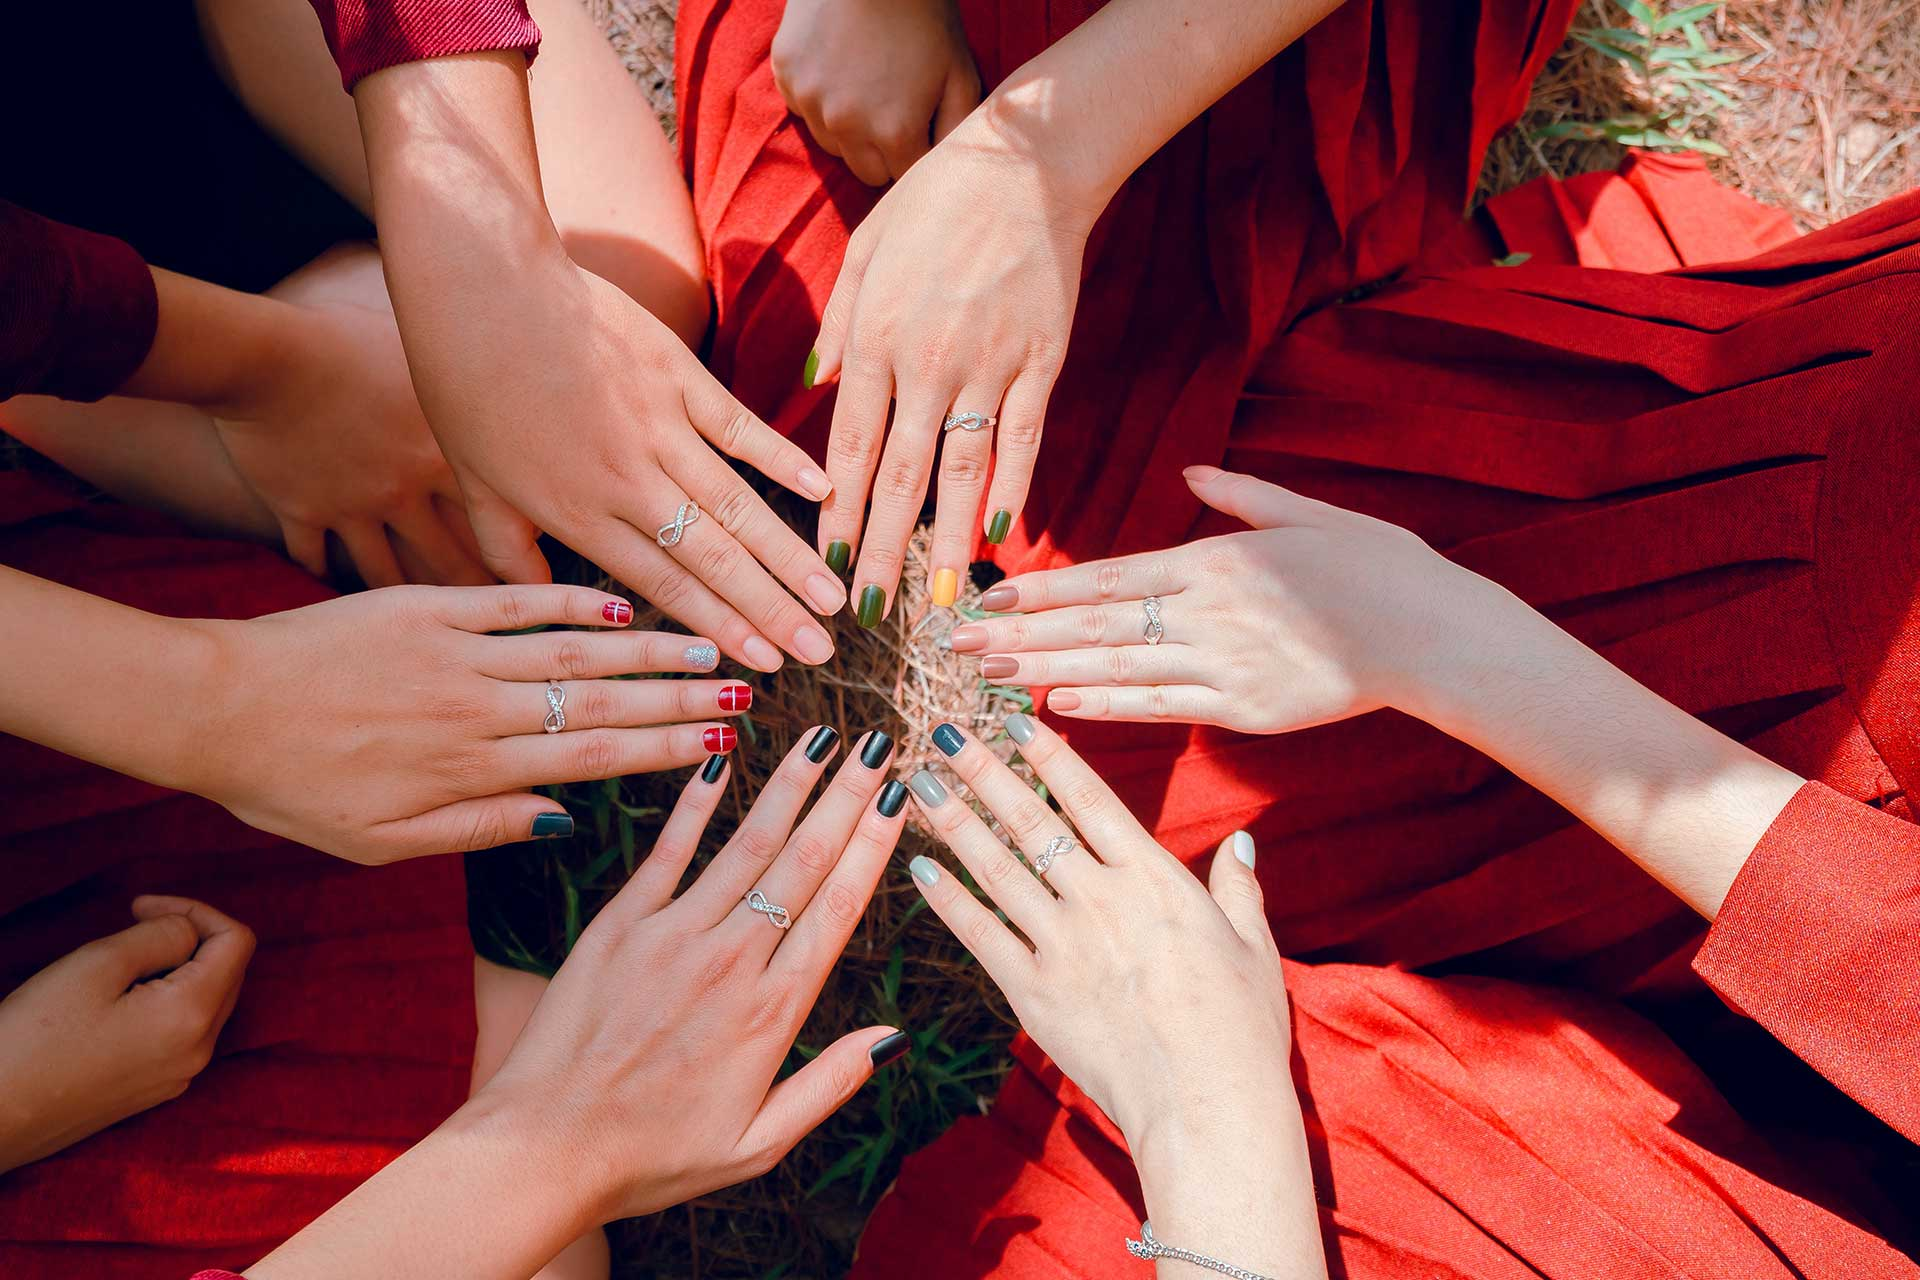 women sitting in a circle with one hand in each showing their different manicures